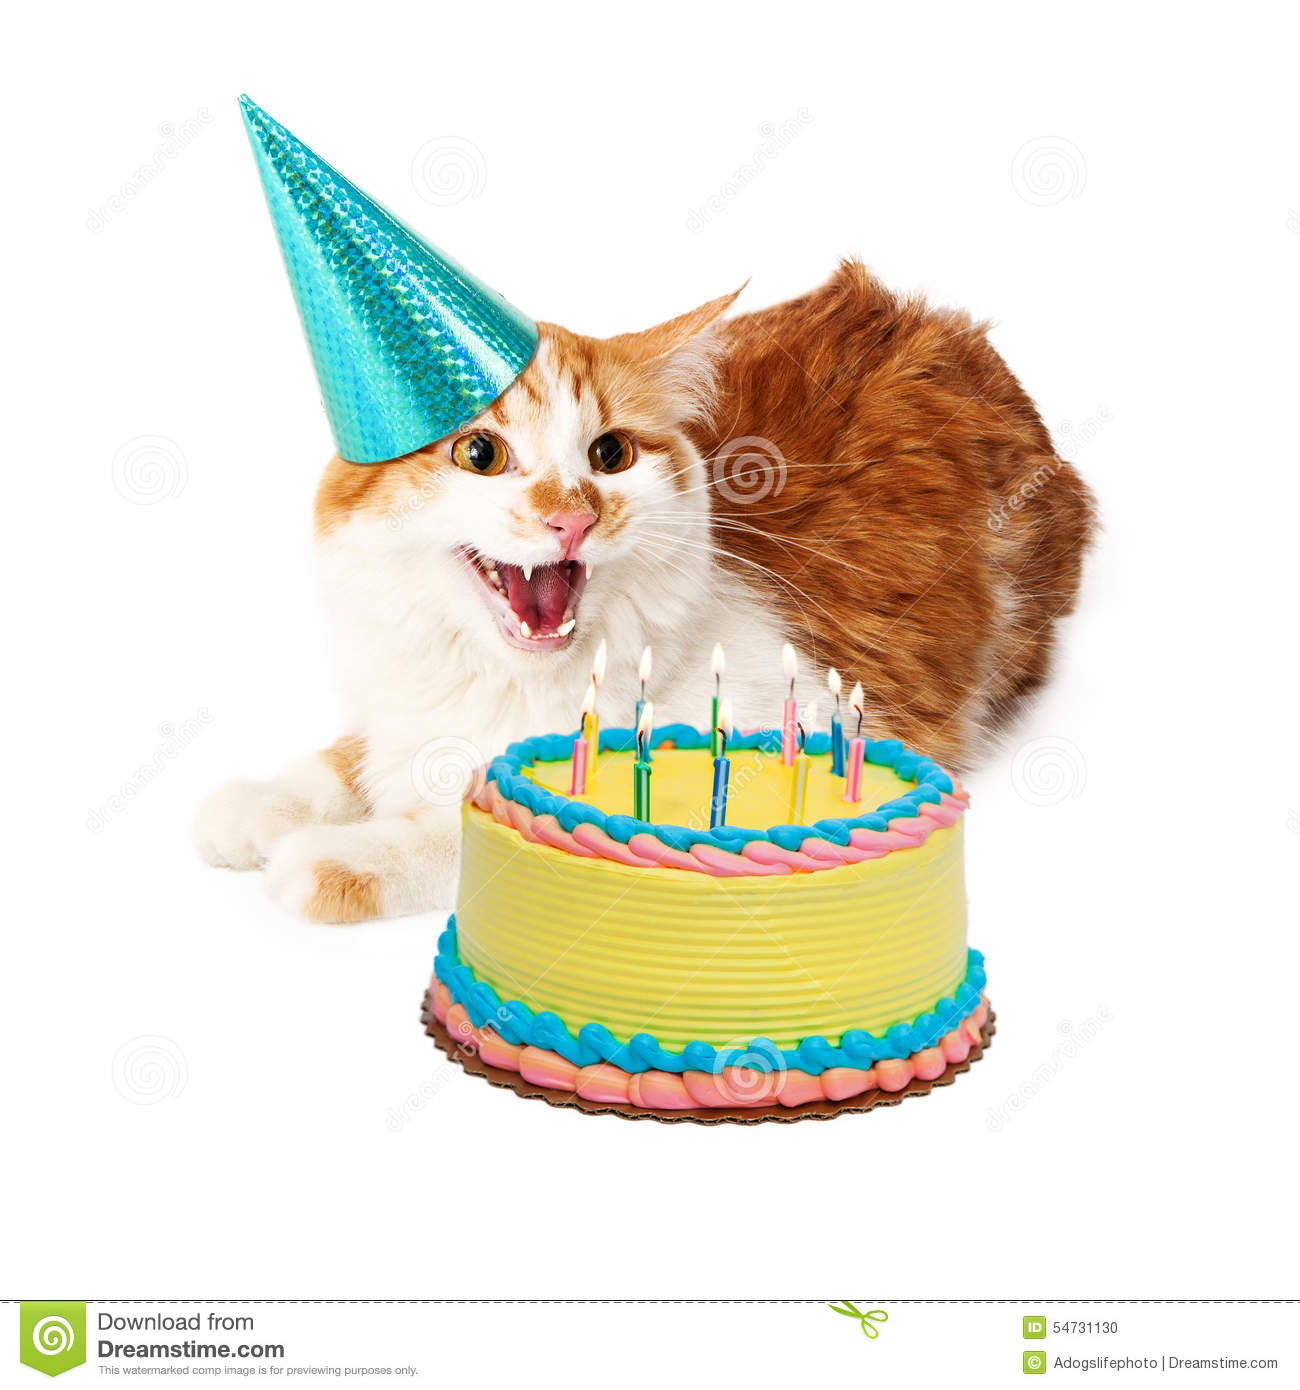 Anniversaire fol drôle Cat With Cake